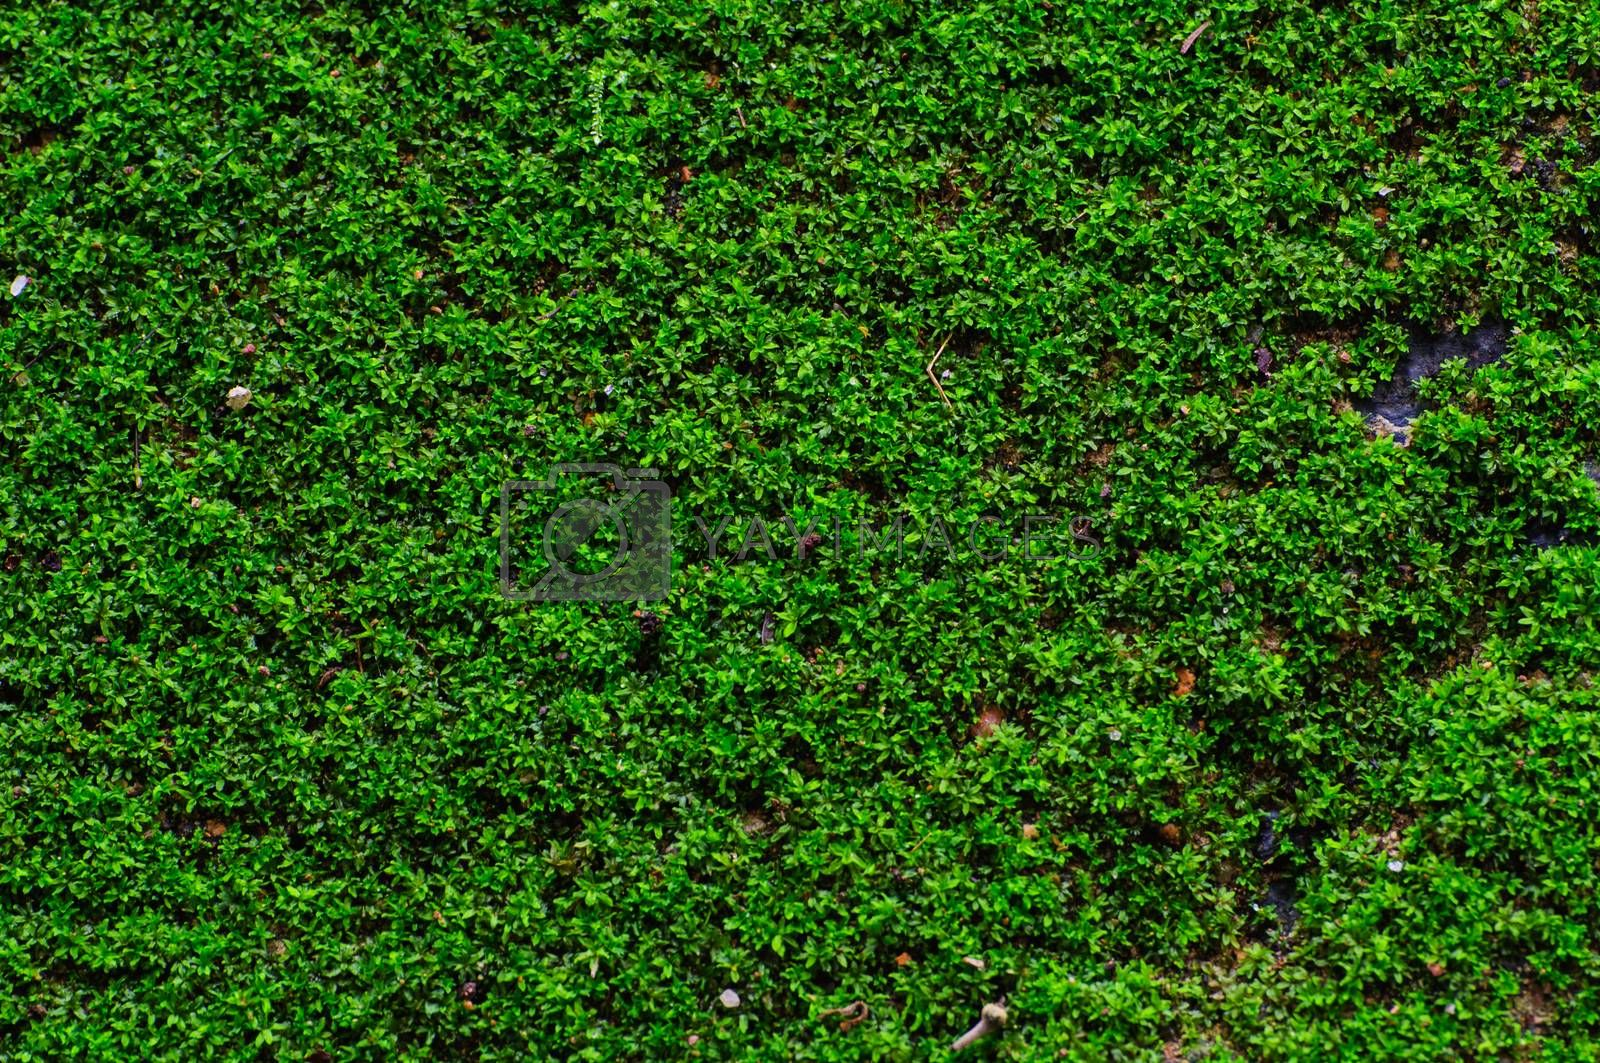 Royalty free image of Green grass texture by Sorapop